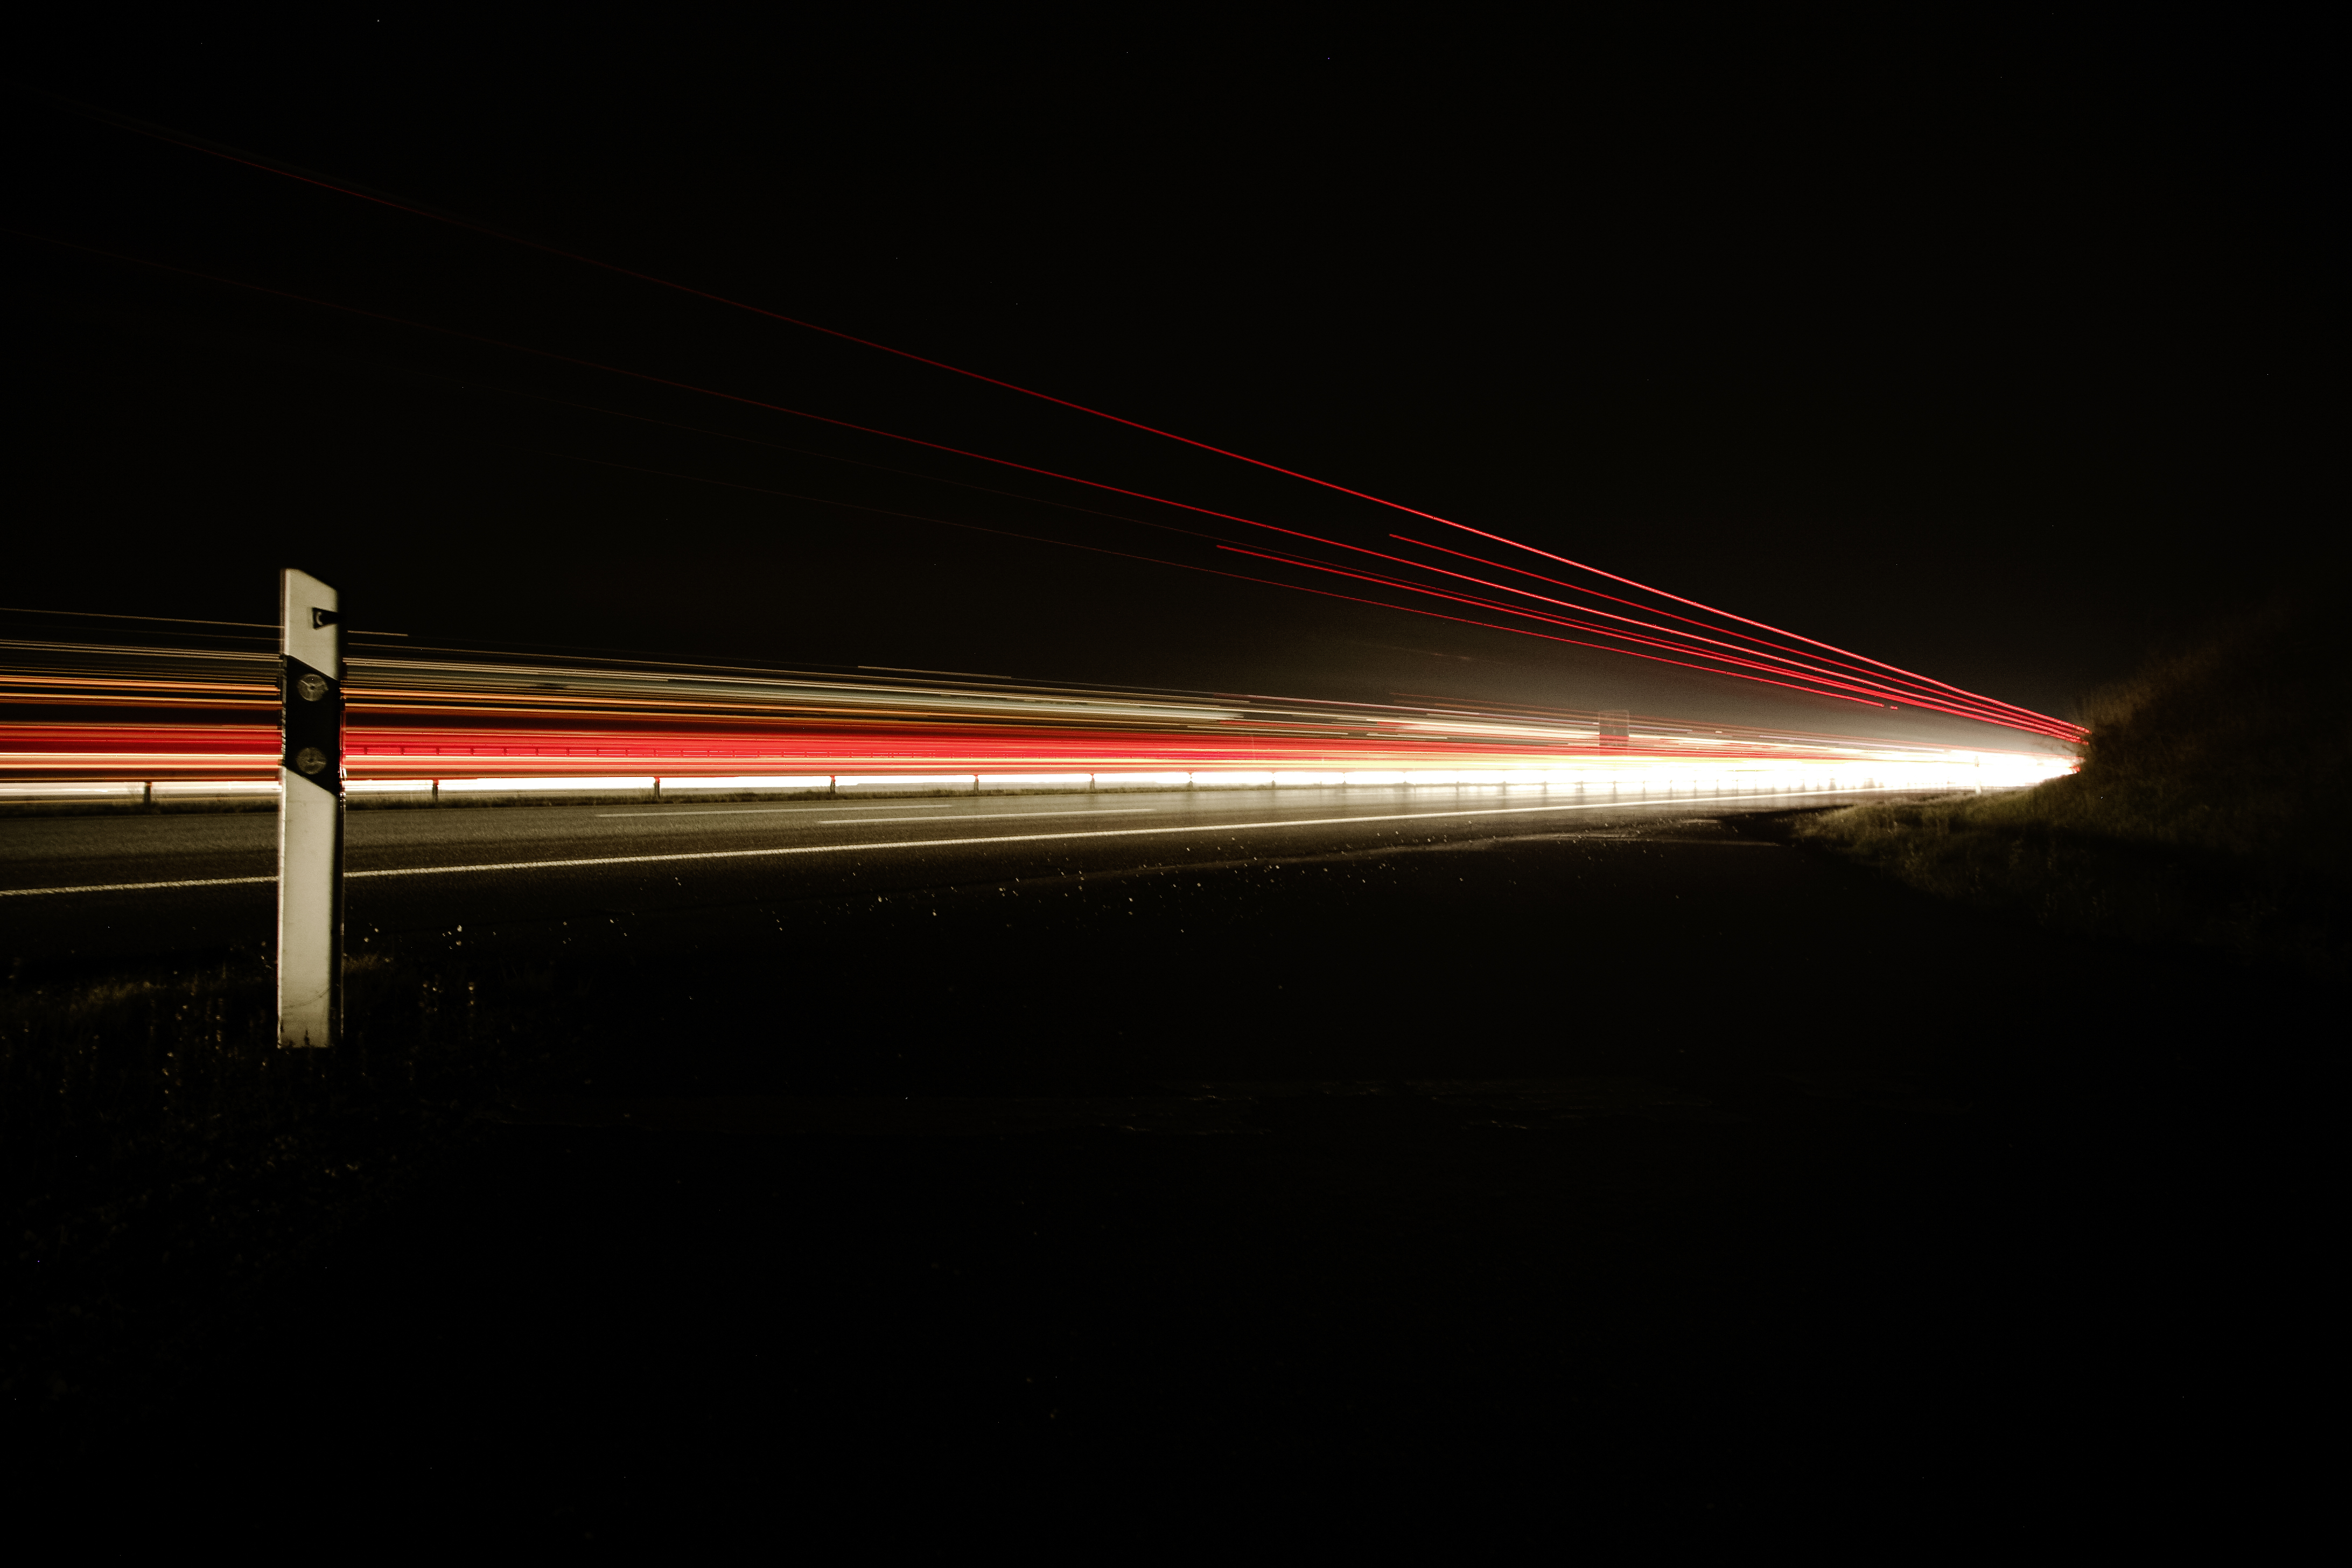 Motion on route, lights, route, speed, flash, car, red light, white light